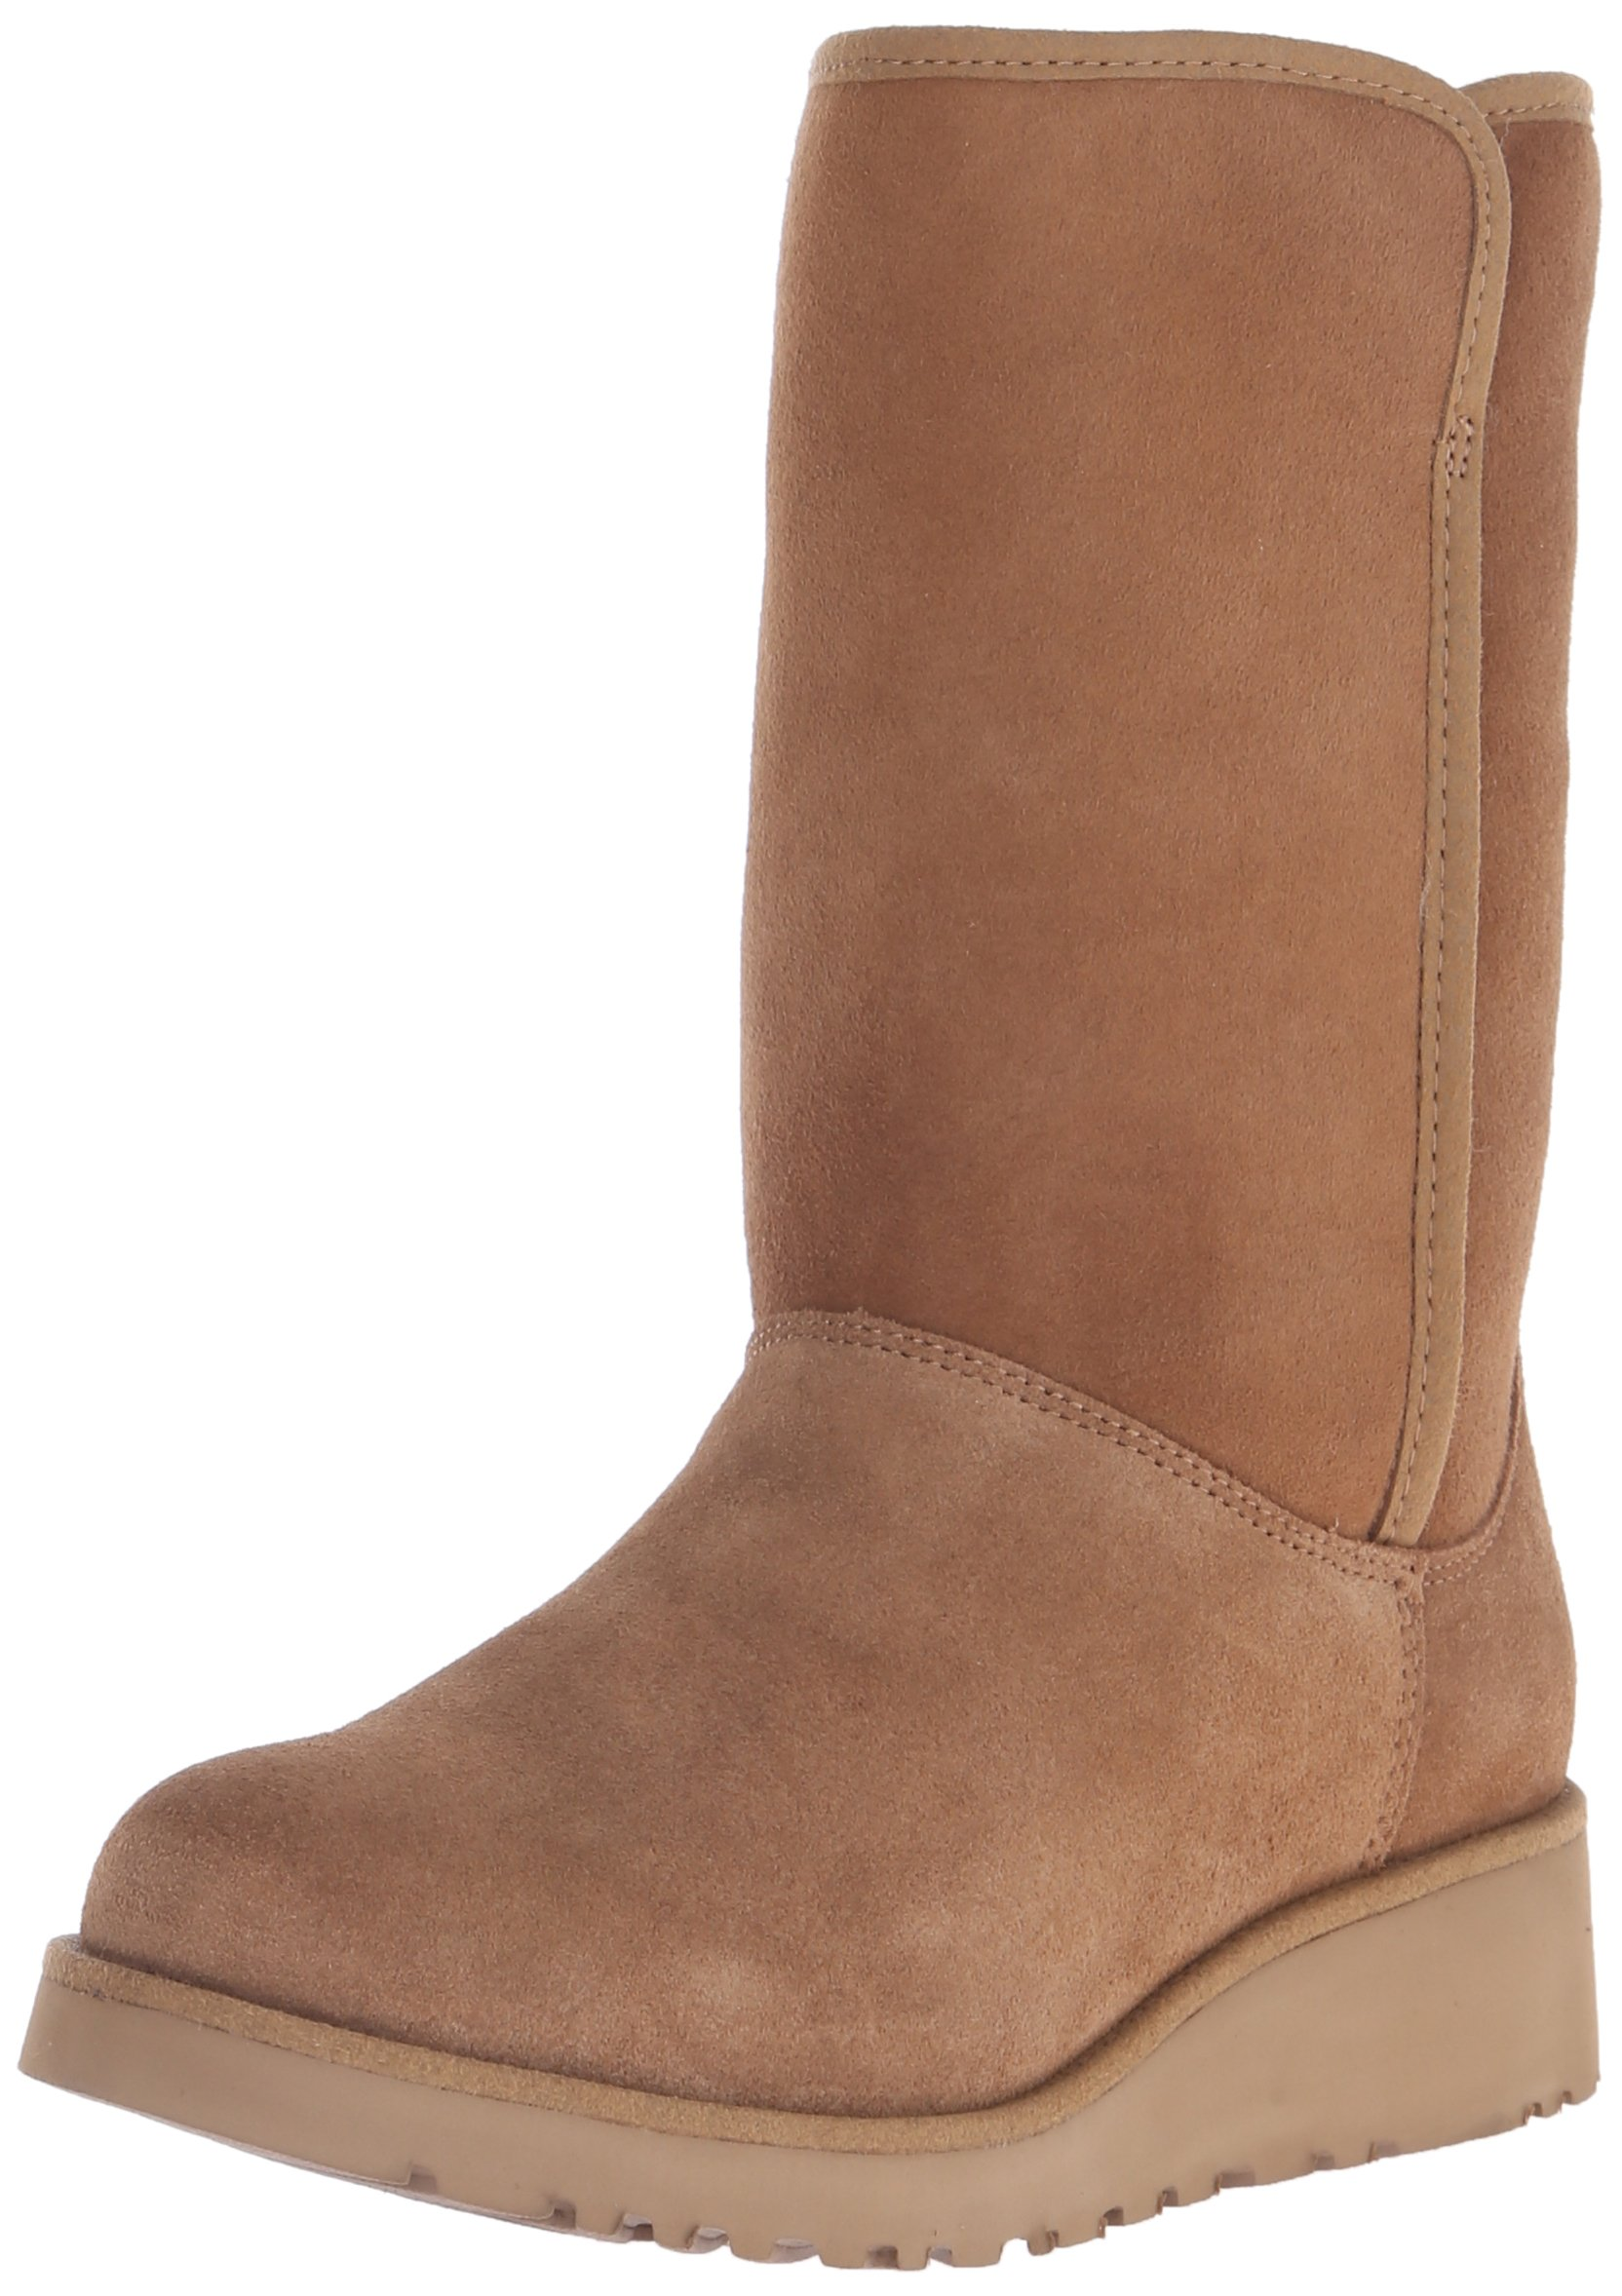 UGG Women's Amie Winter Boot, Chestnut, 8 B US